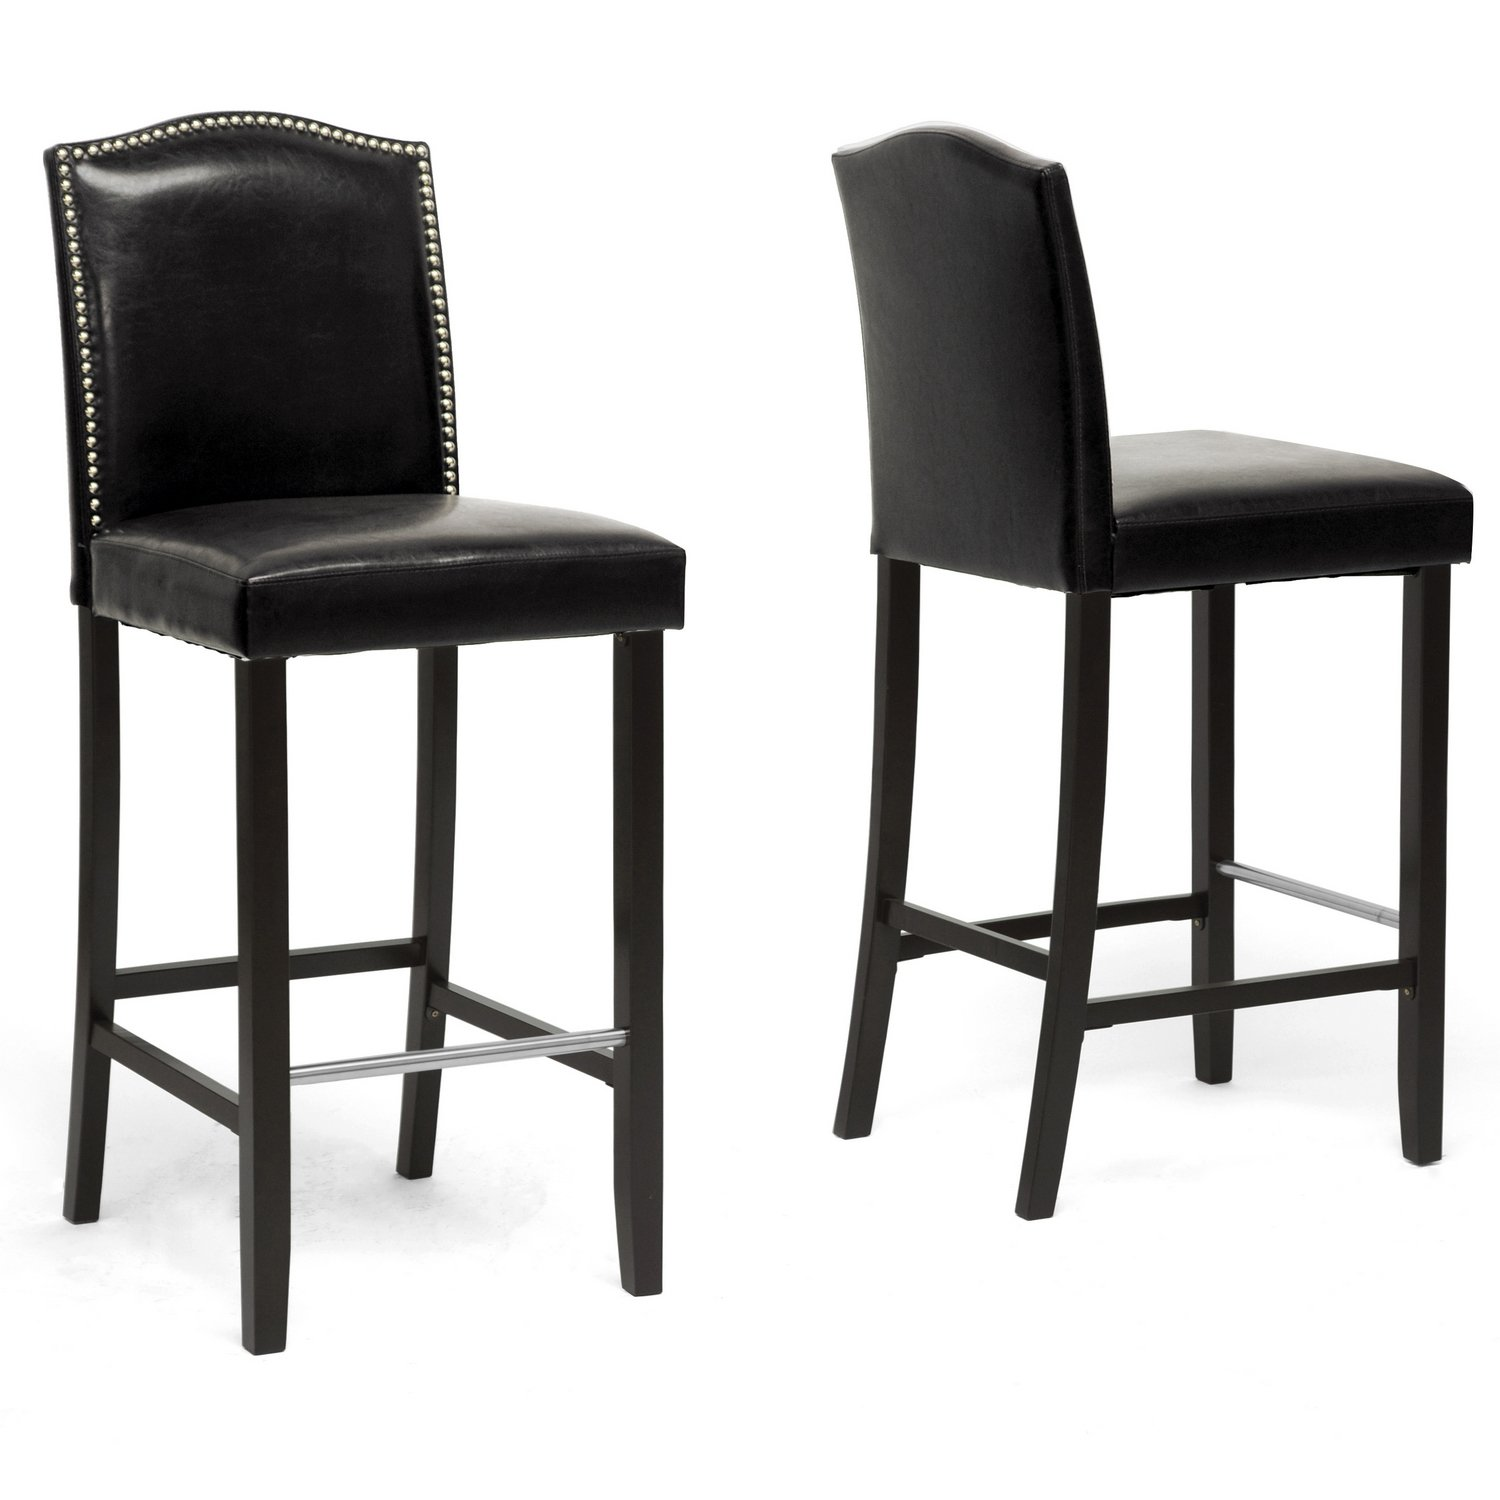 Amazon.com Baxton Studio Libra Modern Bar Stool with Nail Head Trim White Set of 2 Kitchen u0026 Dining  sc 1 st  Amazon.com & Amazon.com: Baxton Studio Libra Modern Bar Stool with Nail Head ... islam-shia.org